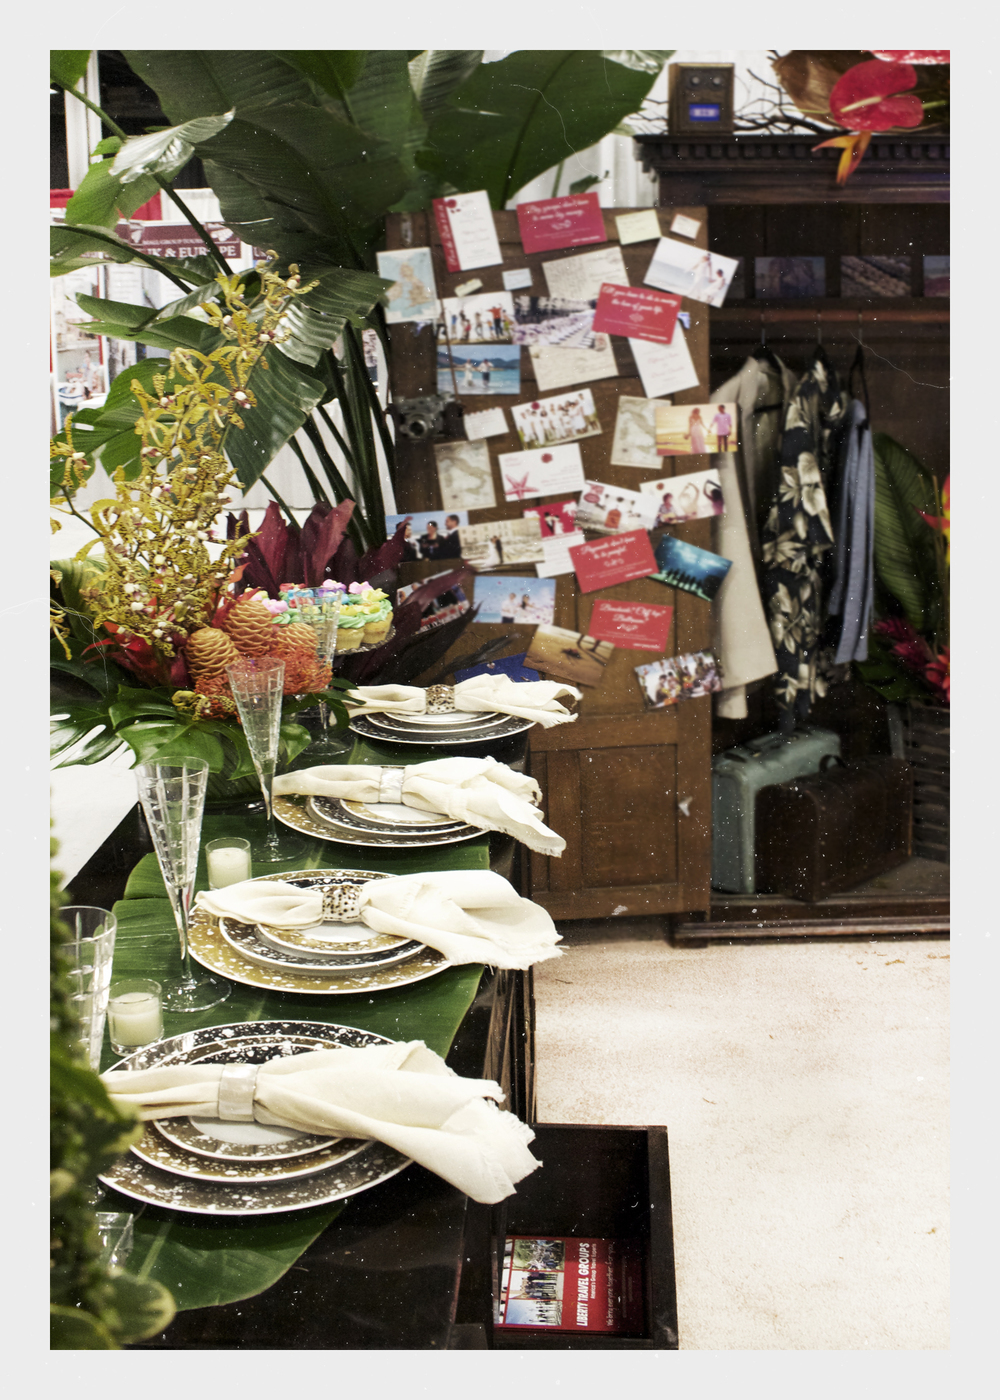 A bouquet of leopard orchids,alternating mother-of-pearl and natural shell napkin rings, and a five-foot wide banana leaf dressed the server for a destination wedding fit for a bride-to-be.